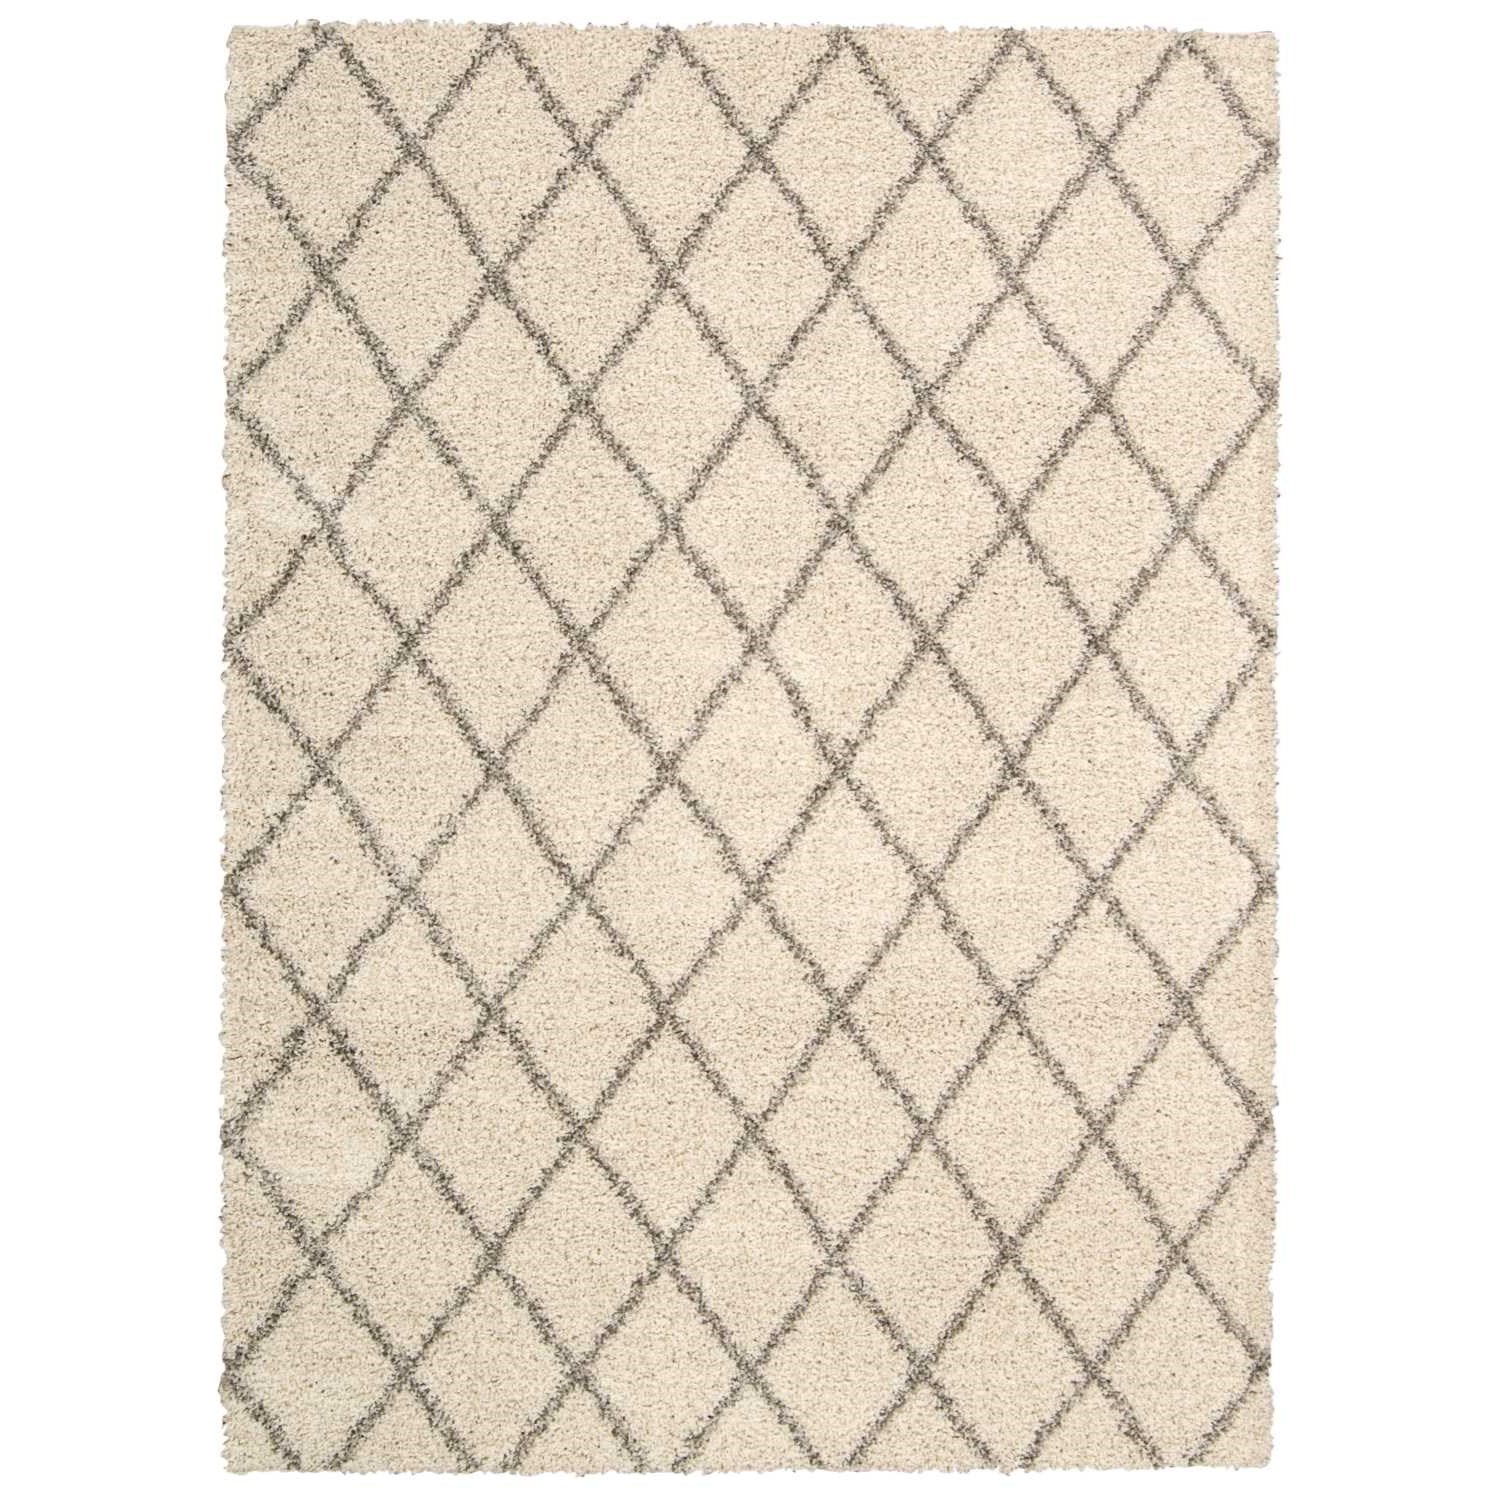 """Brisbane 8'2"""" x 10' Cream Rectangle Rug by Nourison at Home Collections Furniture"""